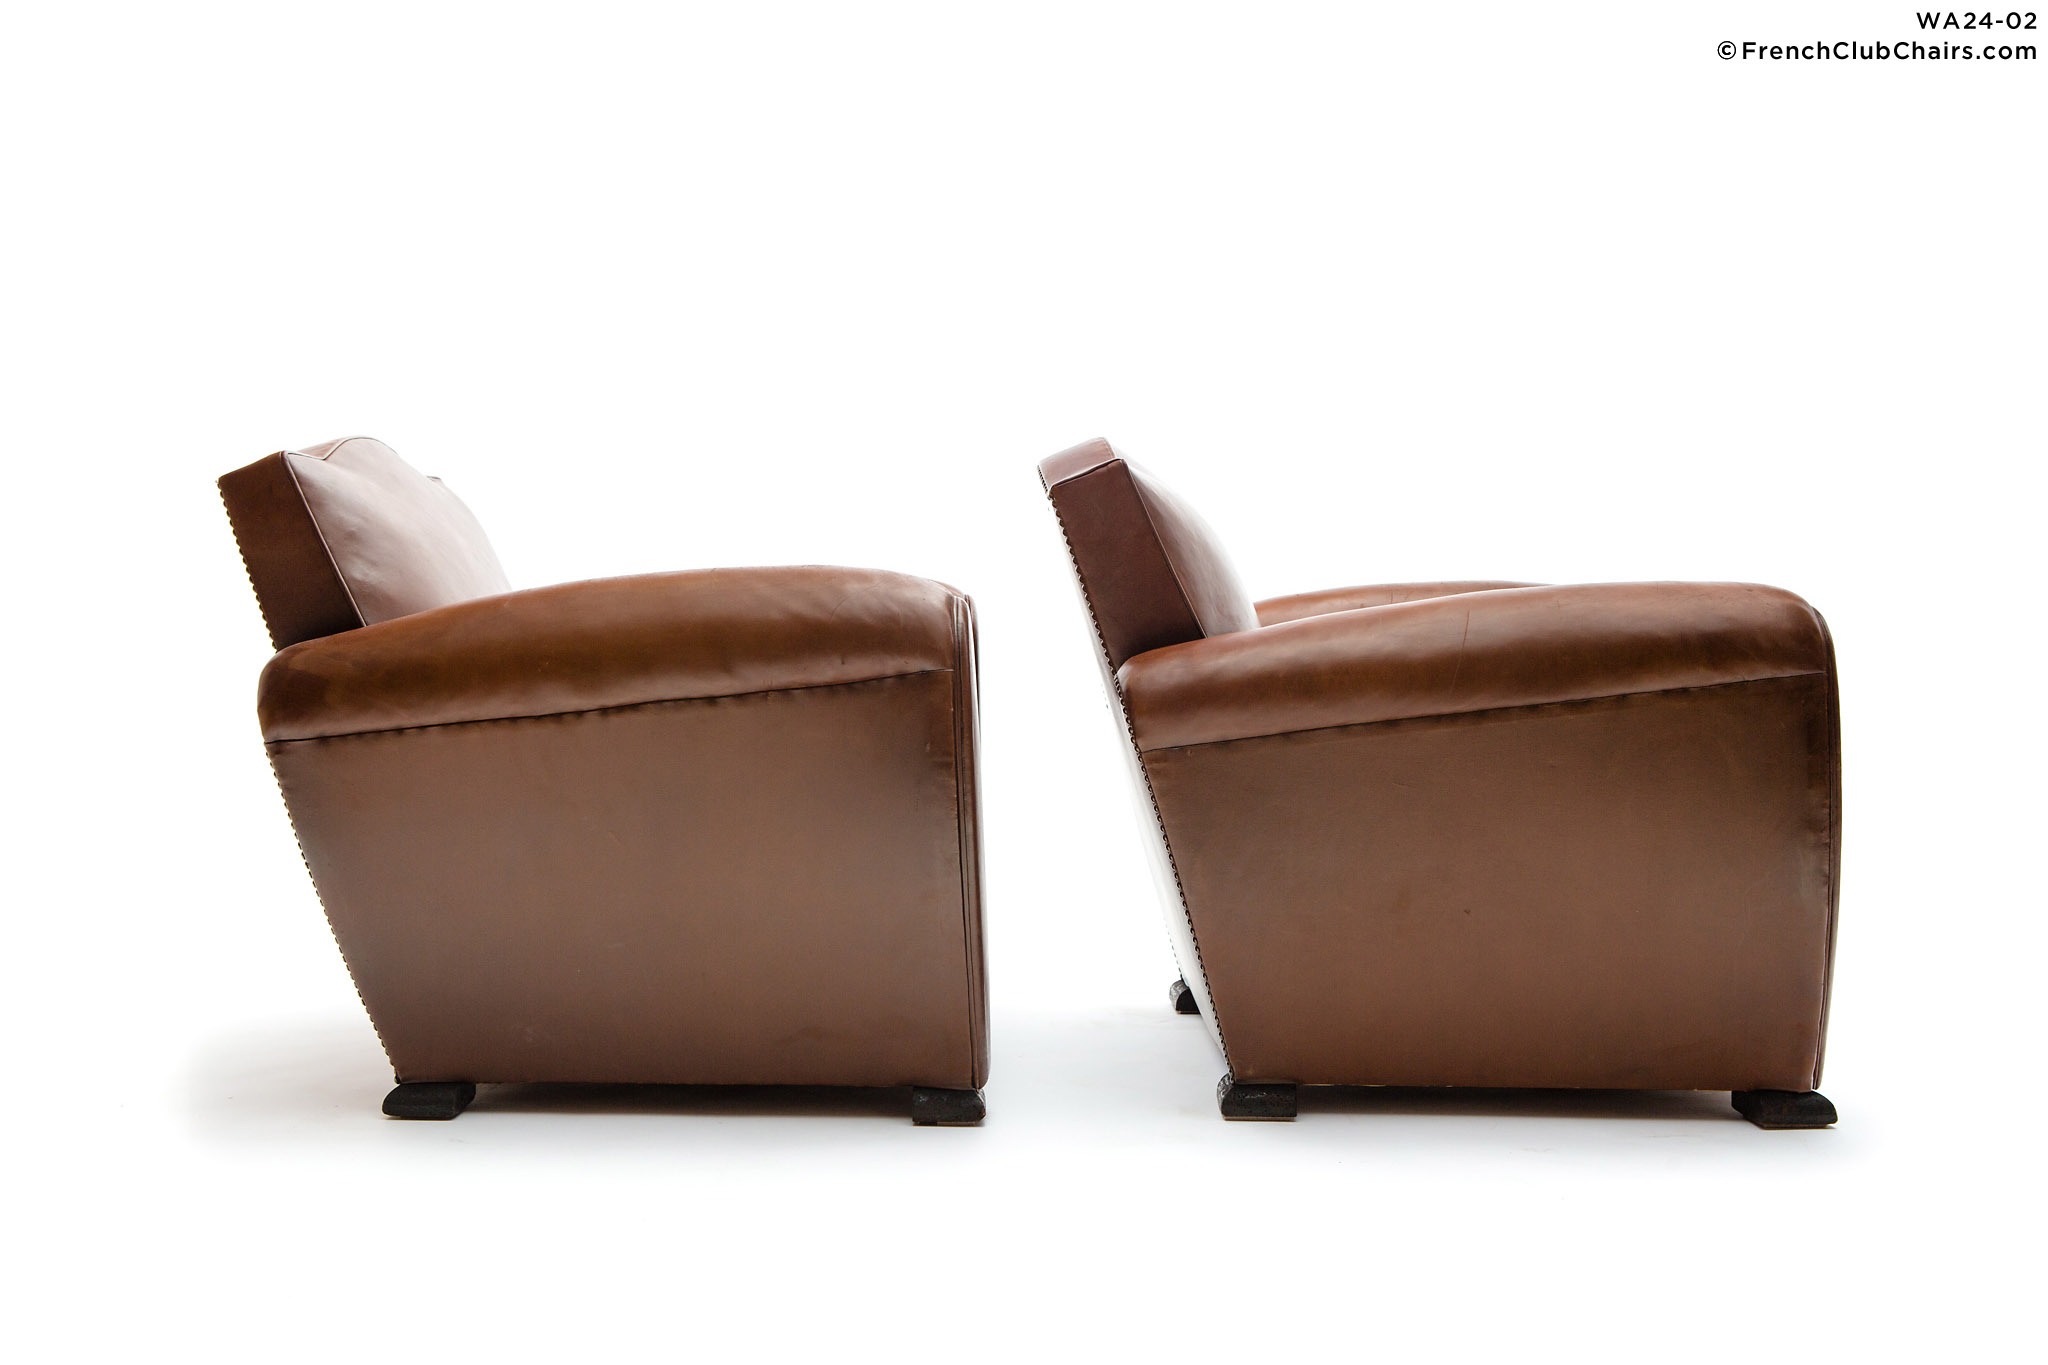 WA24-02_GENDARMELEHAVREFONCEPAIR_W_3RT-v01-williams-antiks-leather-french-club-chair-wa_fcccom_w